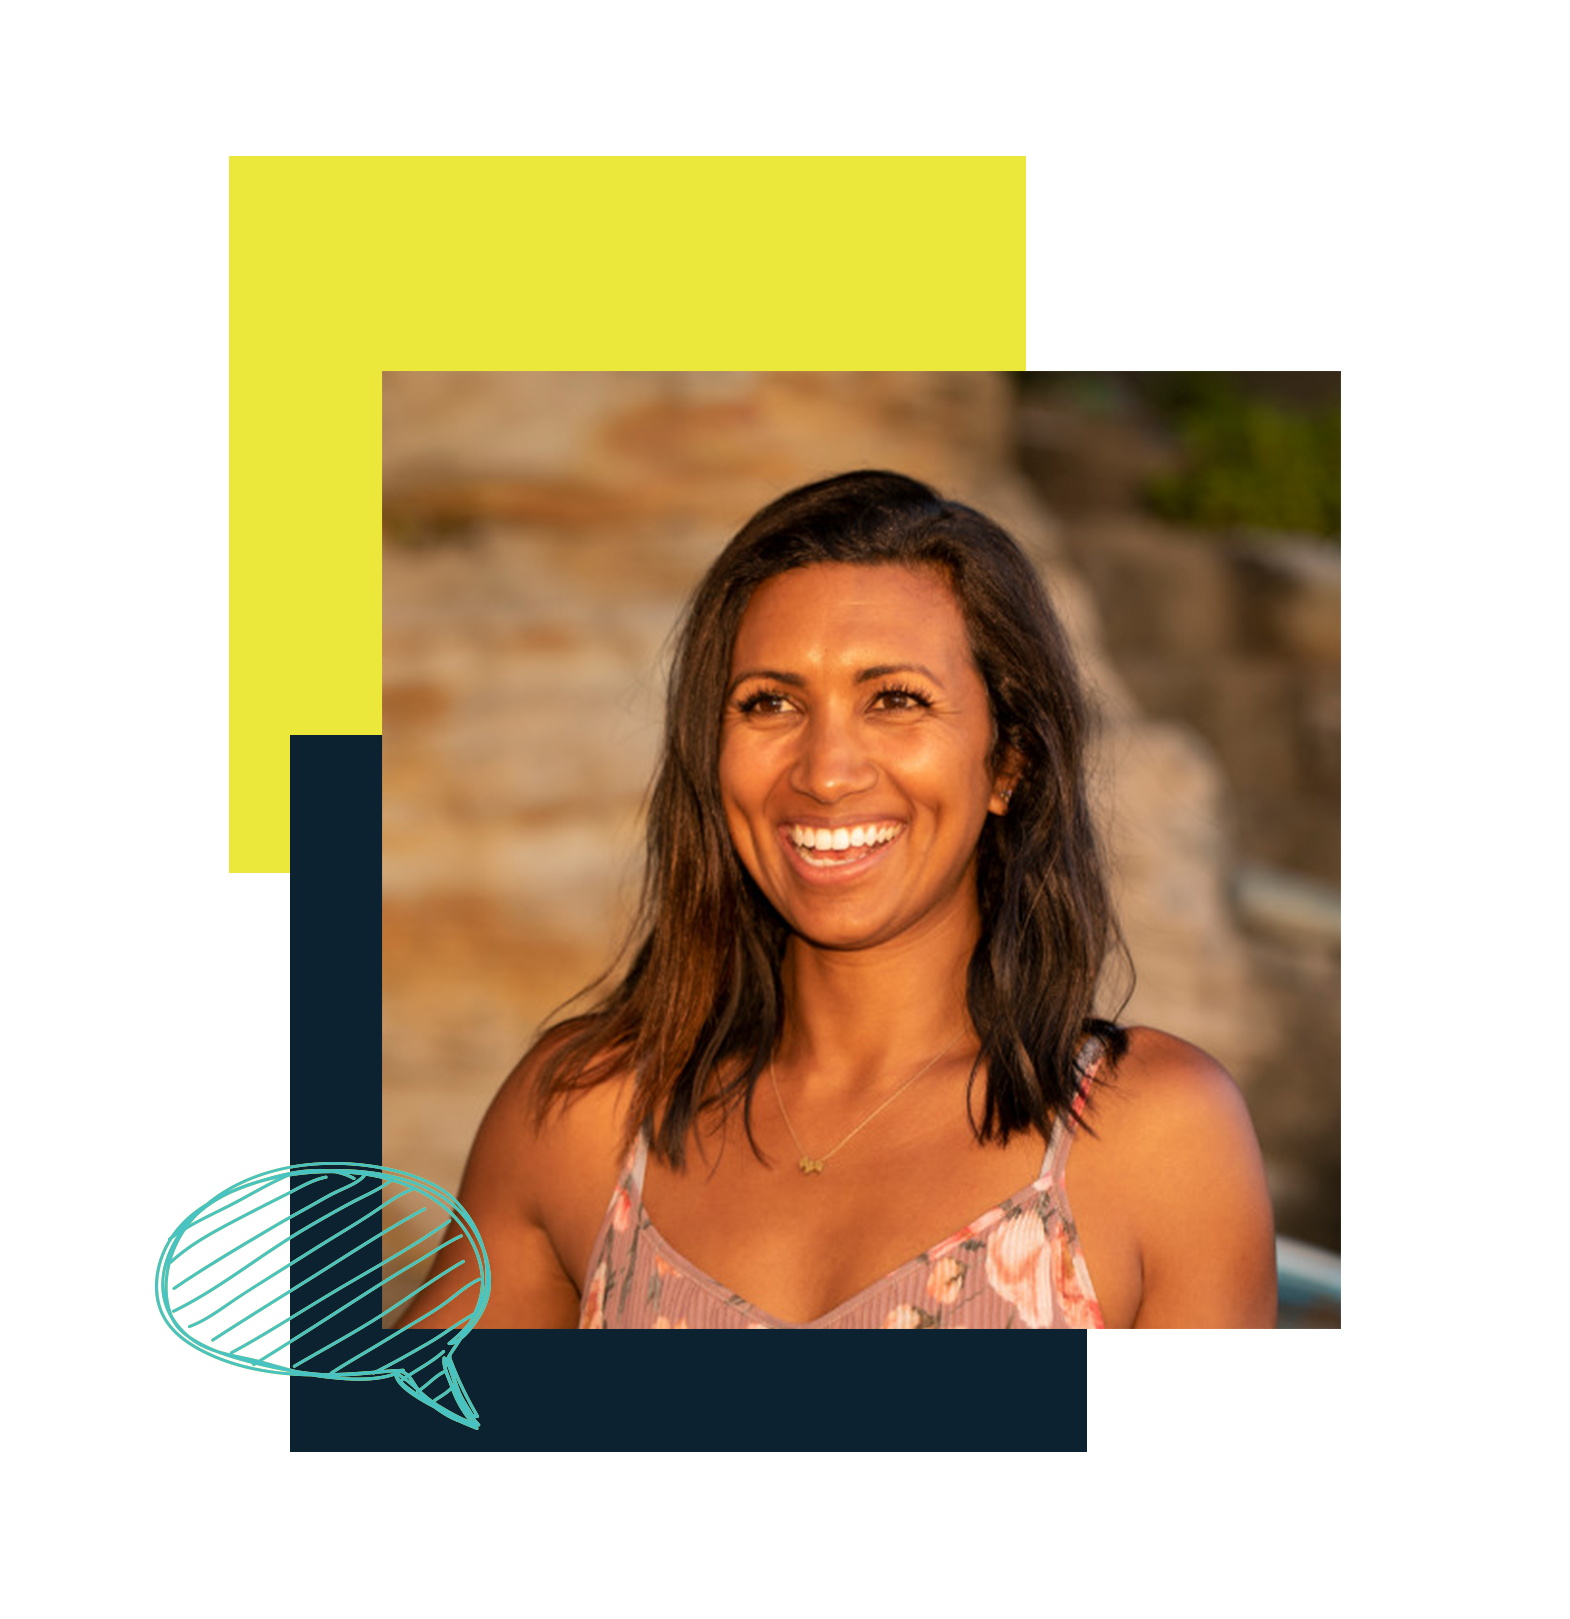 Nikki Shah - Founder, My MuseI joined LBD Ventures after 6 months of working for myself on my own business, MyMuse. It has been wonderful to meet on a monthly basis, discuss and plan for the coming months, and have someone to hold you accountable. I feel that developing a start-up can be extremely lonely, however, LBD Ventures has allowed me to find my tribe. We support each other on a everyday and can bounce ideas off each other, or just be there for each other when we are having a tough day.